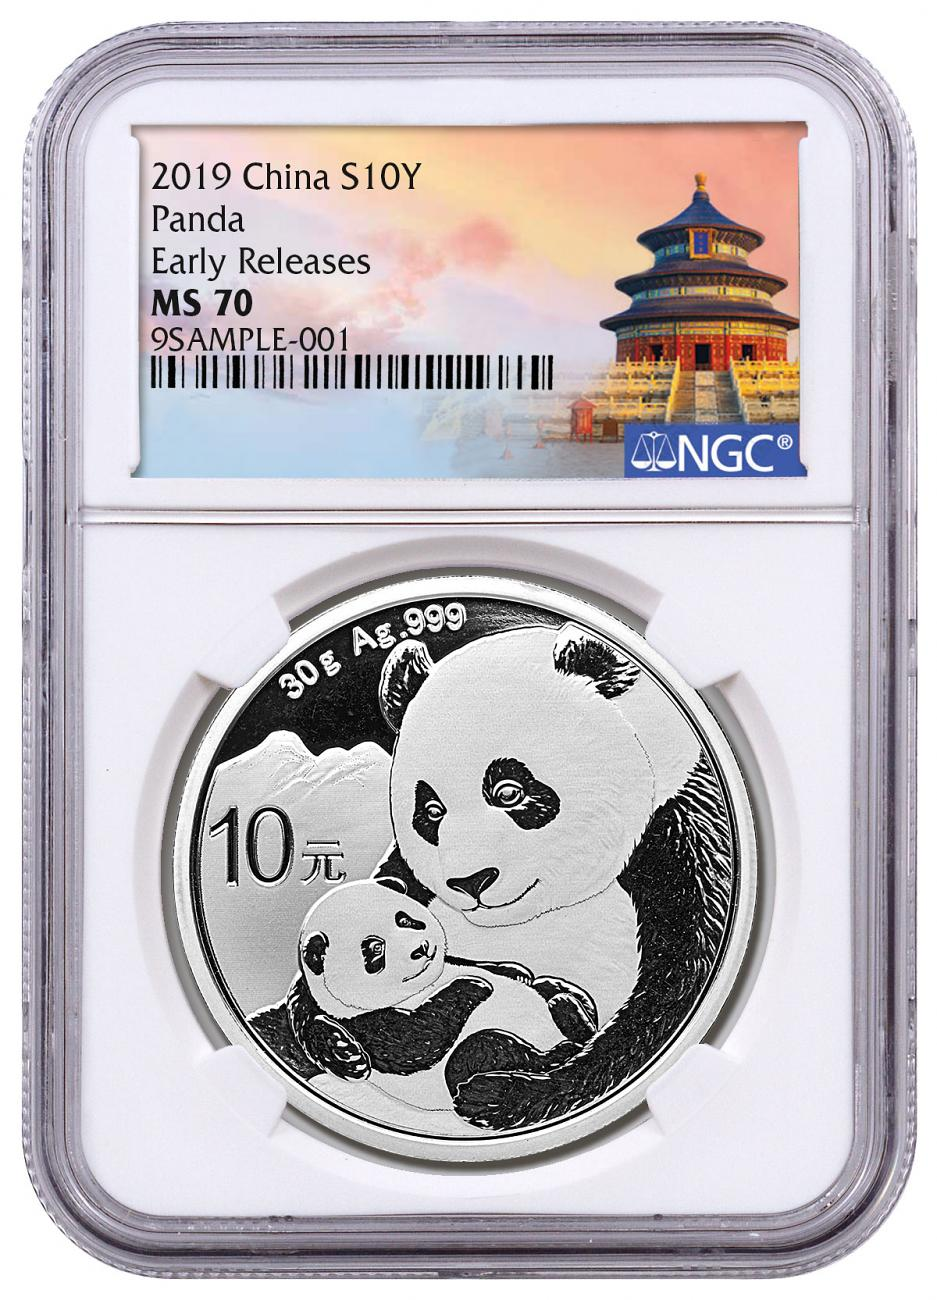 2019 China 30 g Silver Panda ¥10 Coin NGC MS70 ER Exclusive Temple Label